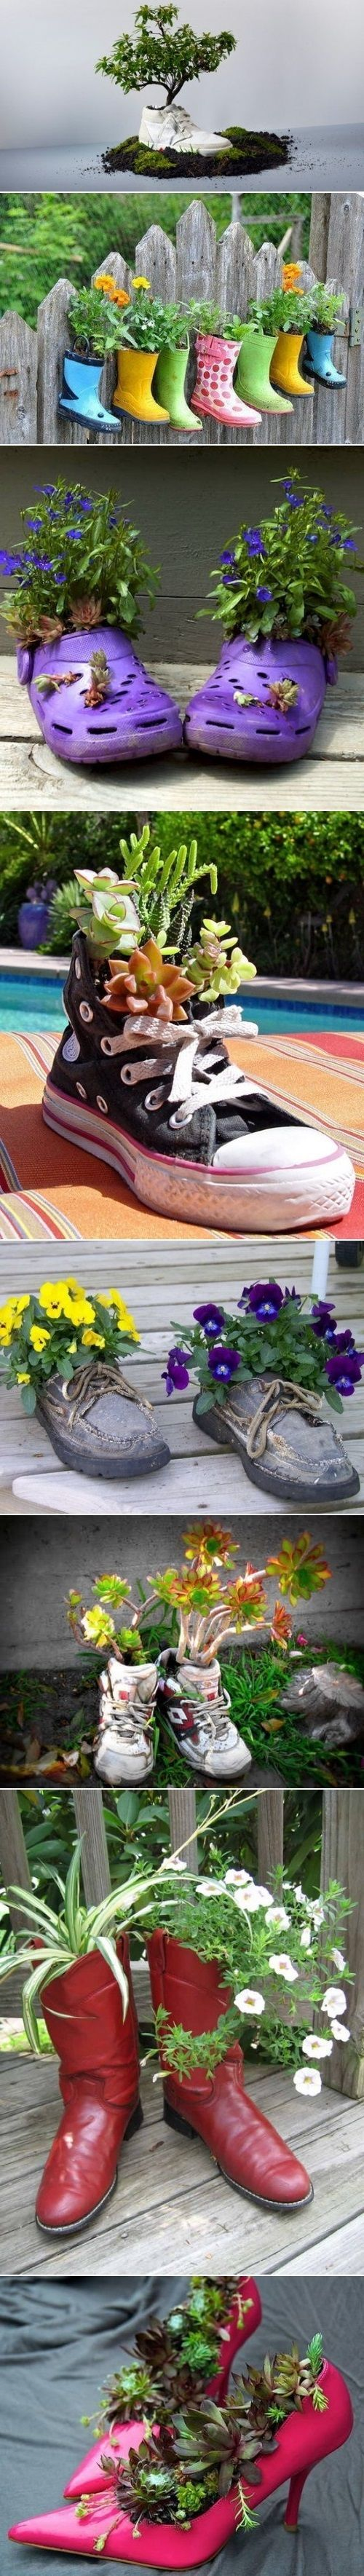 Get planting with old Shoes  wellies! #homesfornature